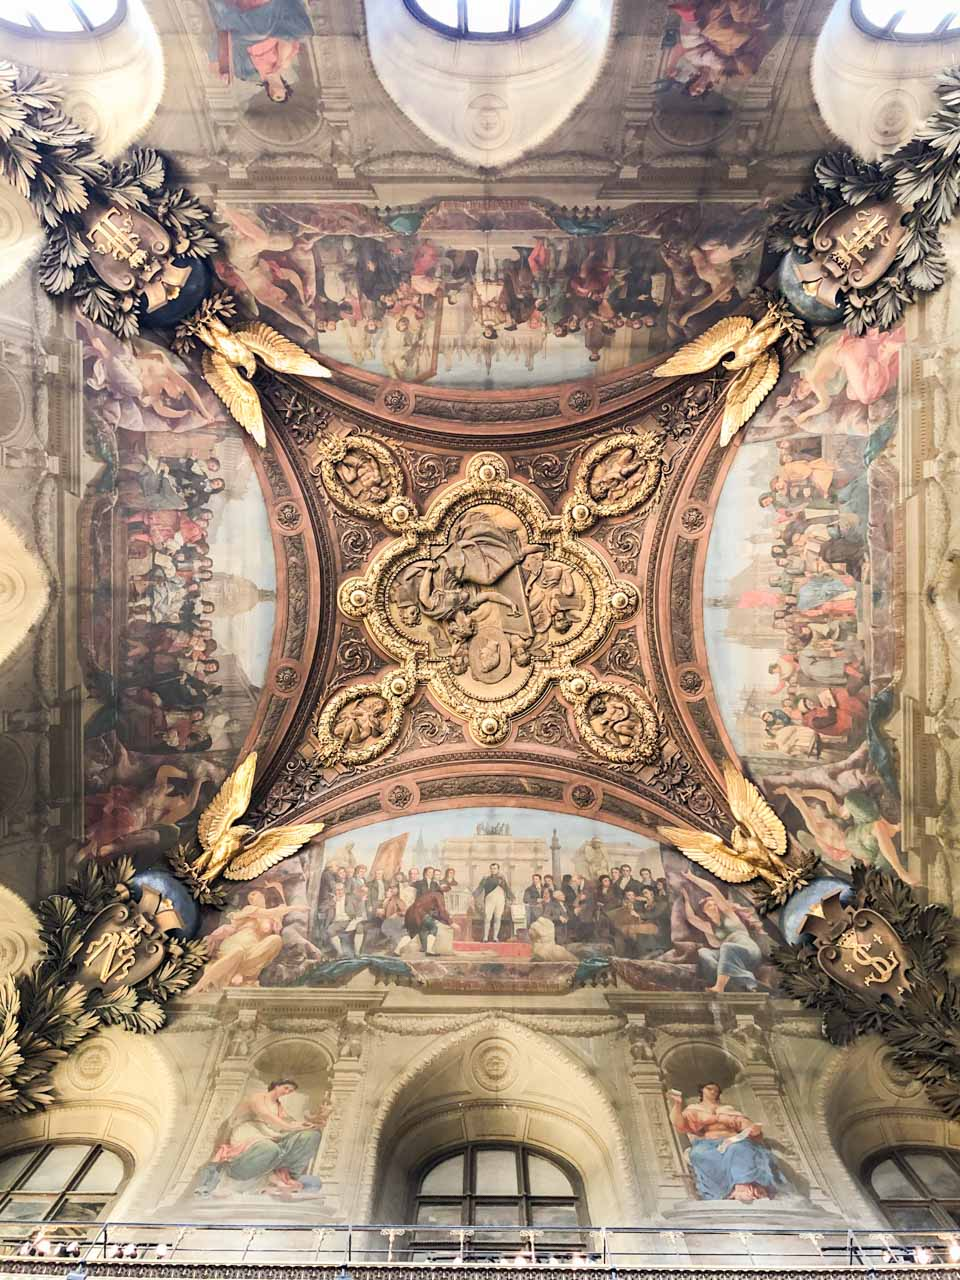 Frescoes on an ornately decorated ceiling in the Louvre Museum in Paris, France